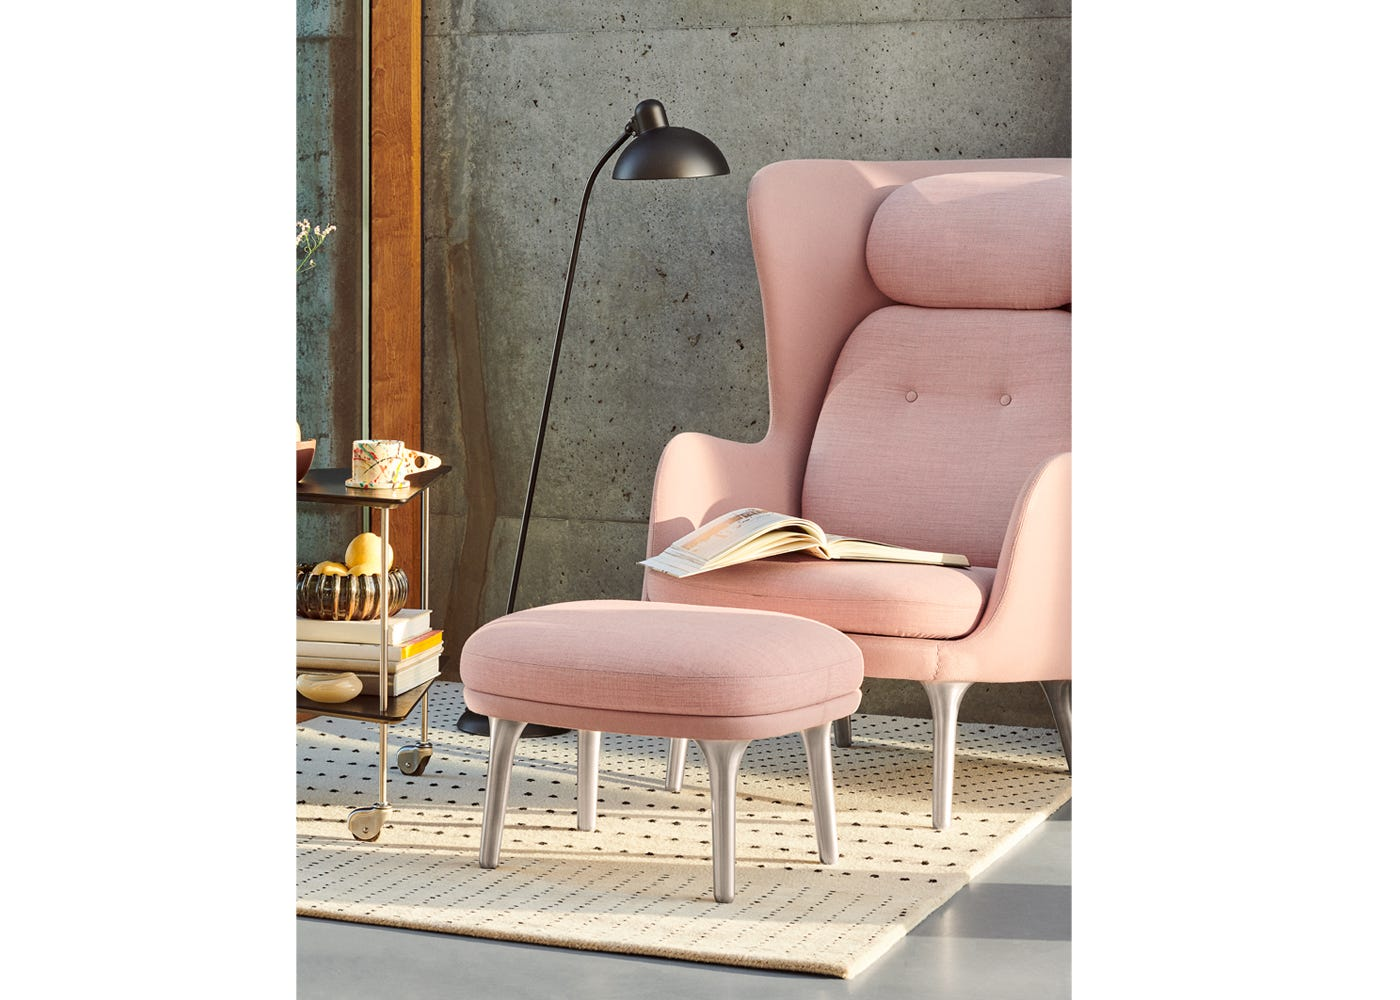 Ro Easy Chair in Light Beige/Light Red (from afar creates a Light Pink colour)